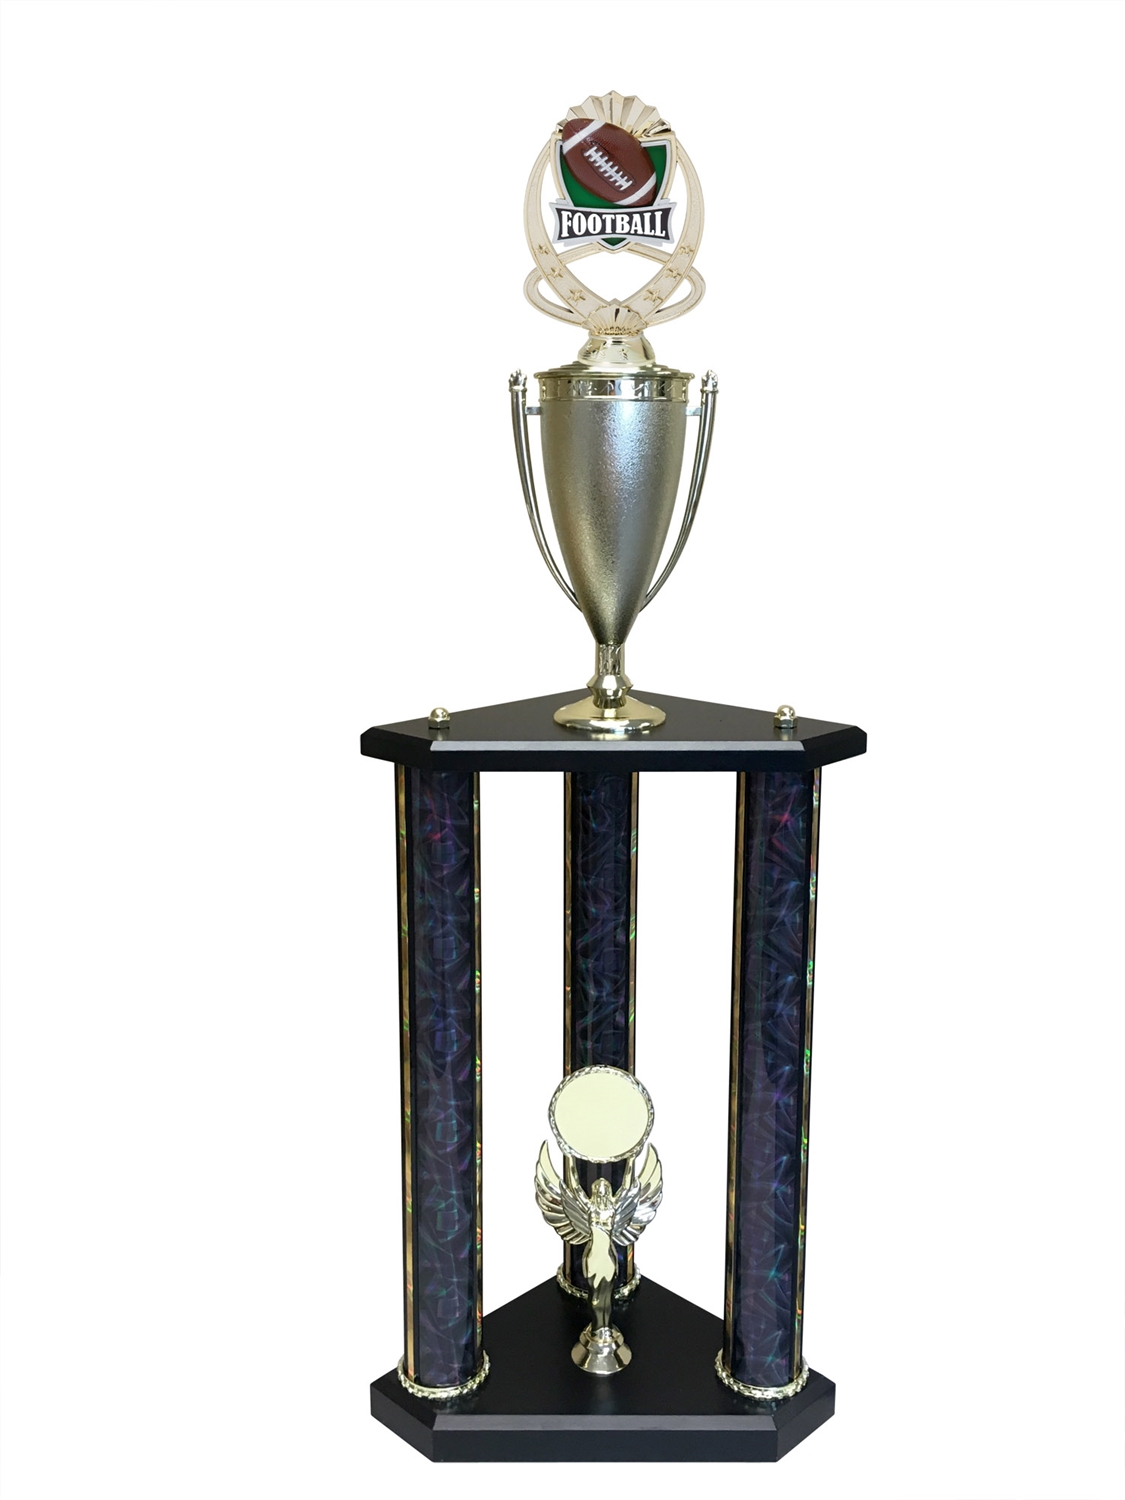 3 Post Football Trophy in 11 colors & 3 sizes